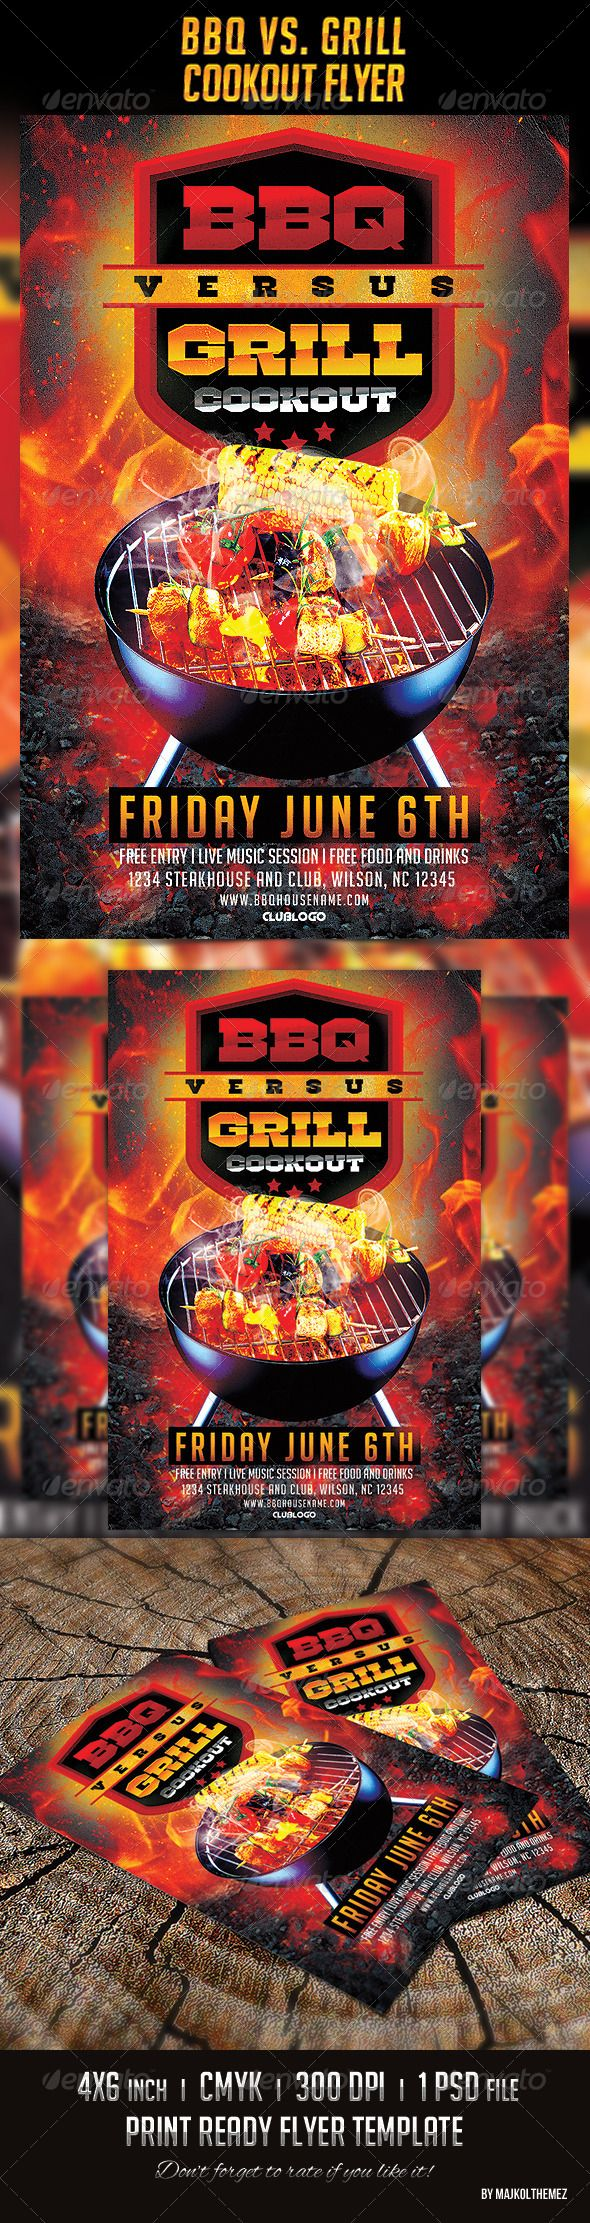 Bbq Vs Grill Cookout Flyer Events Flyers Bbq Flyer Templates